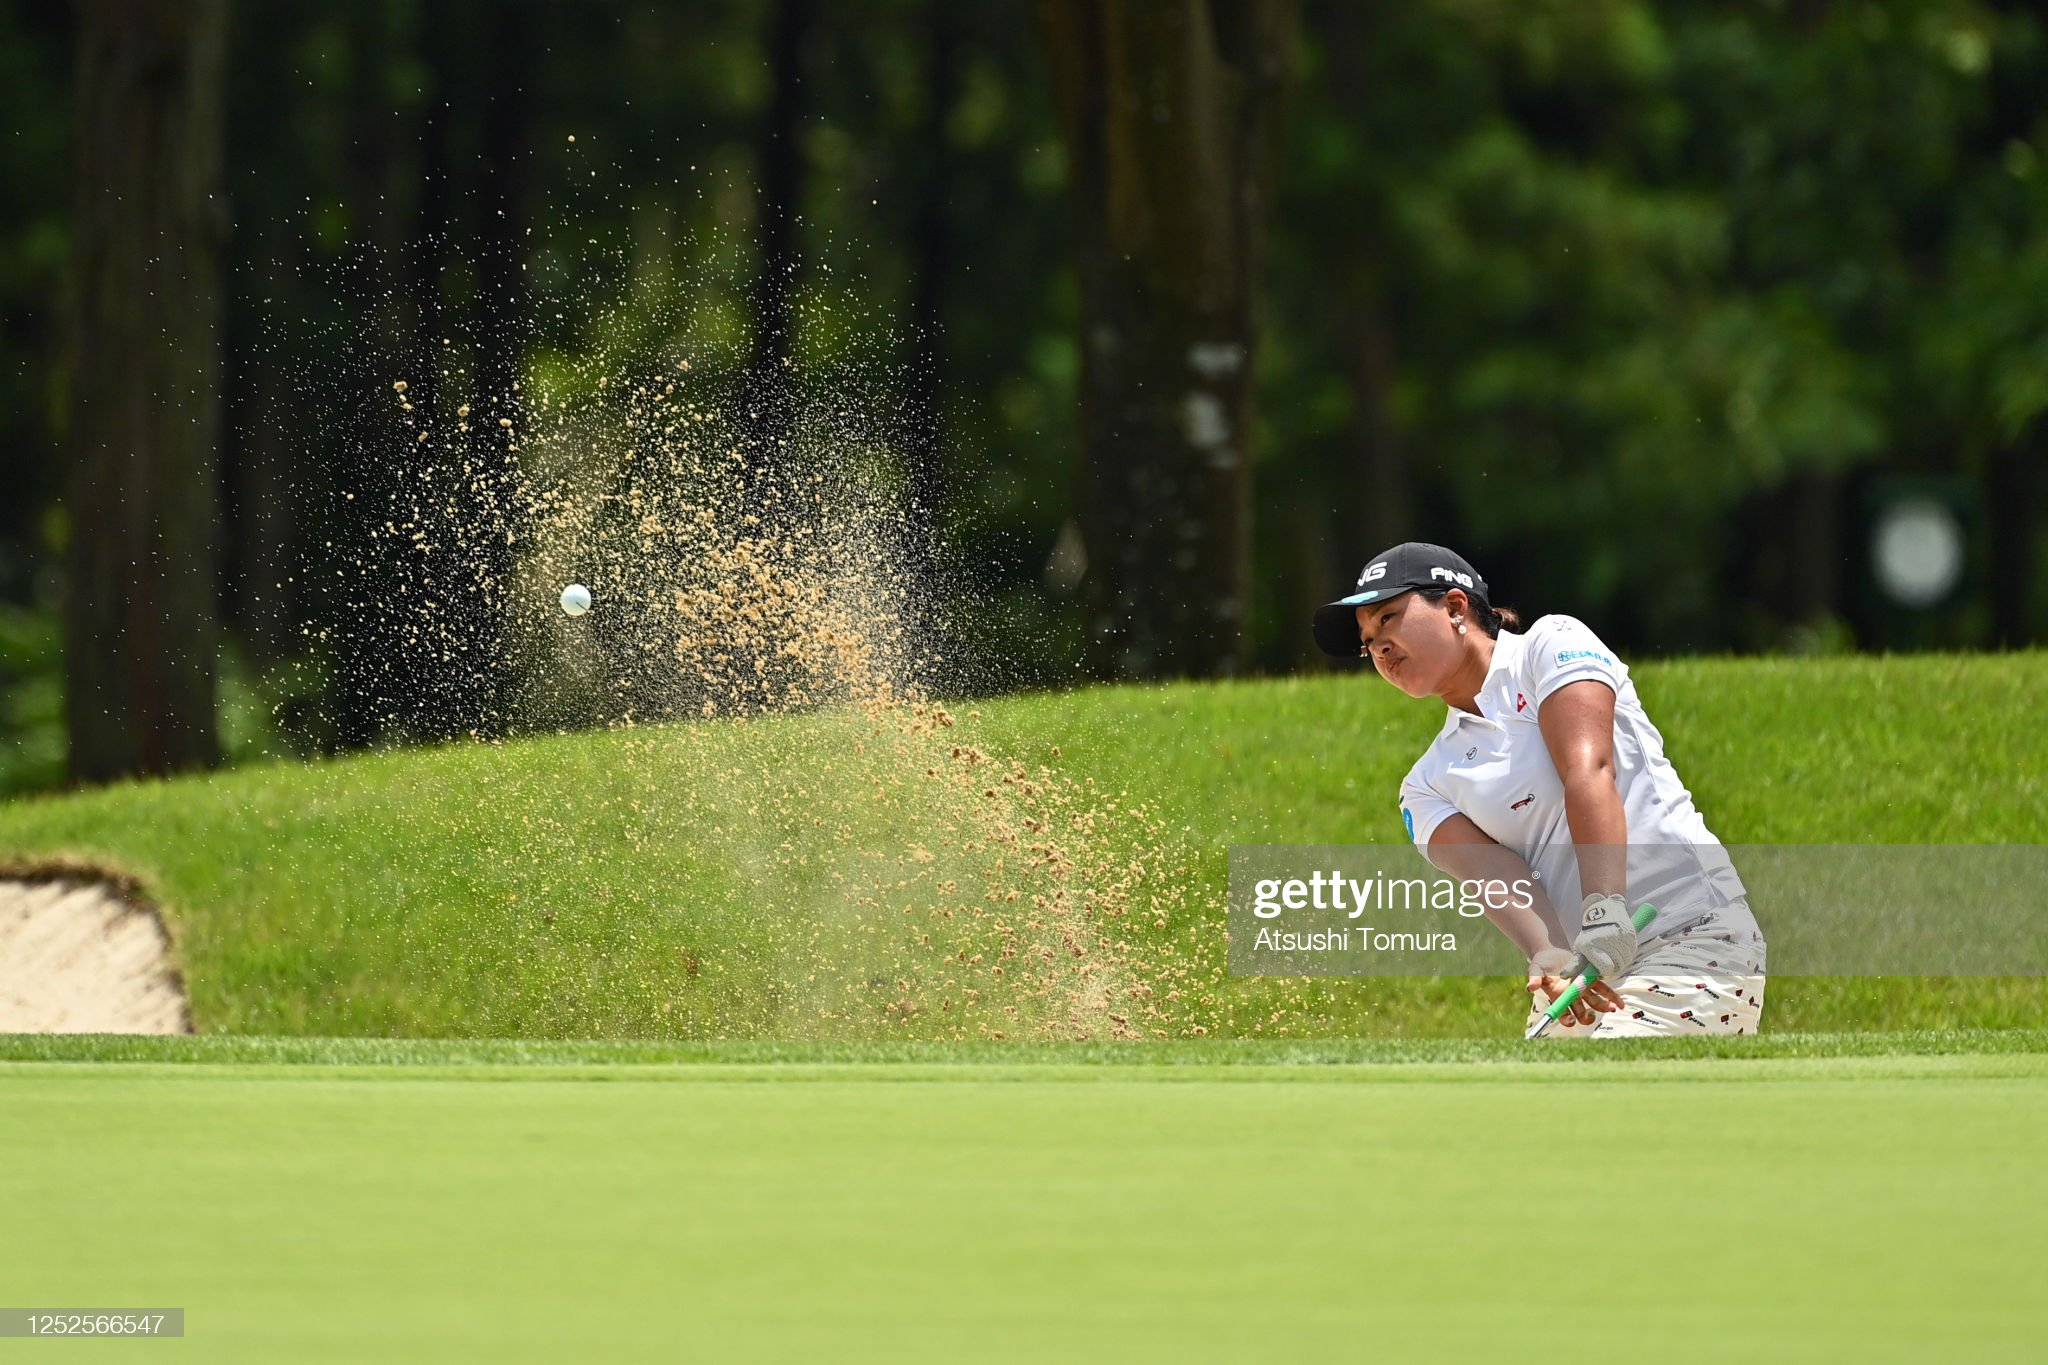 https://media.gettyimages.com/photos/ai-suzuki-of-japan-hits-out-from-a-bunker-on-the-9th-hole-during-the-picture-id1252566547?s=2048x2048